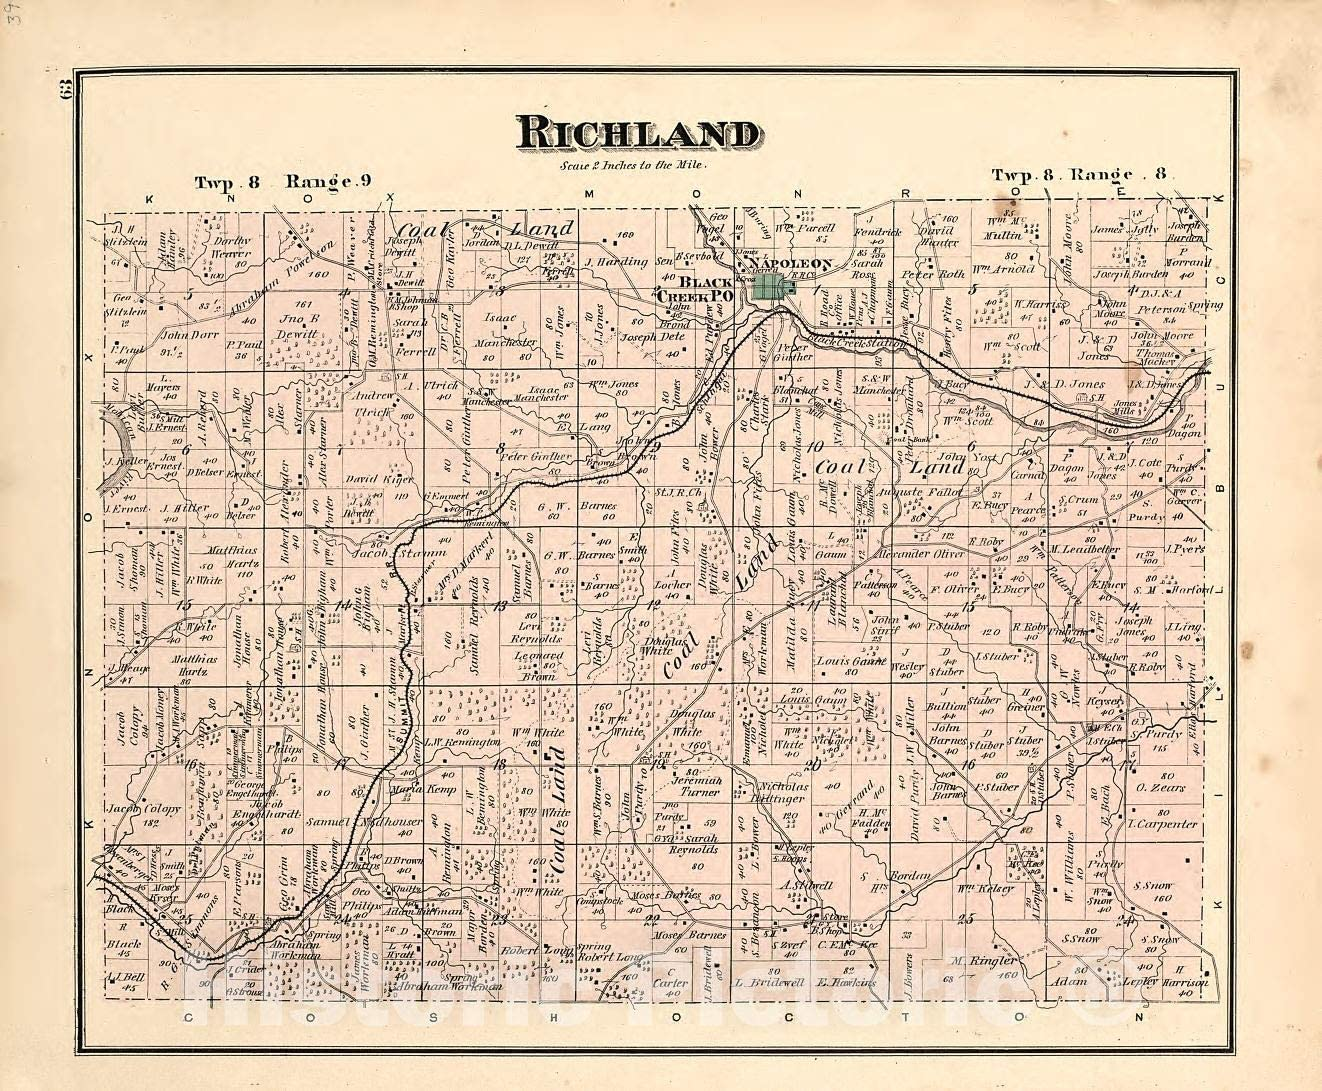 Historic 1875 Map - Caldwell's Atlas of Holmes Co, Ohio - Richland - Caldwell's Atlas of Holmes County, Ohio 44in x 37in